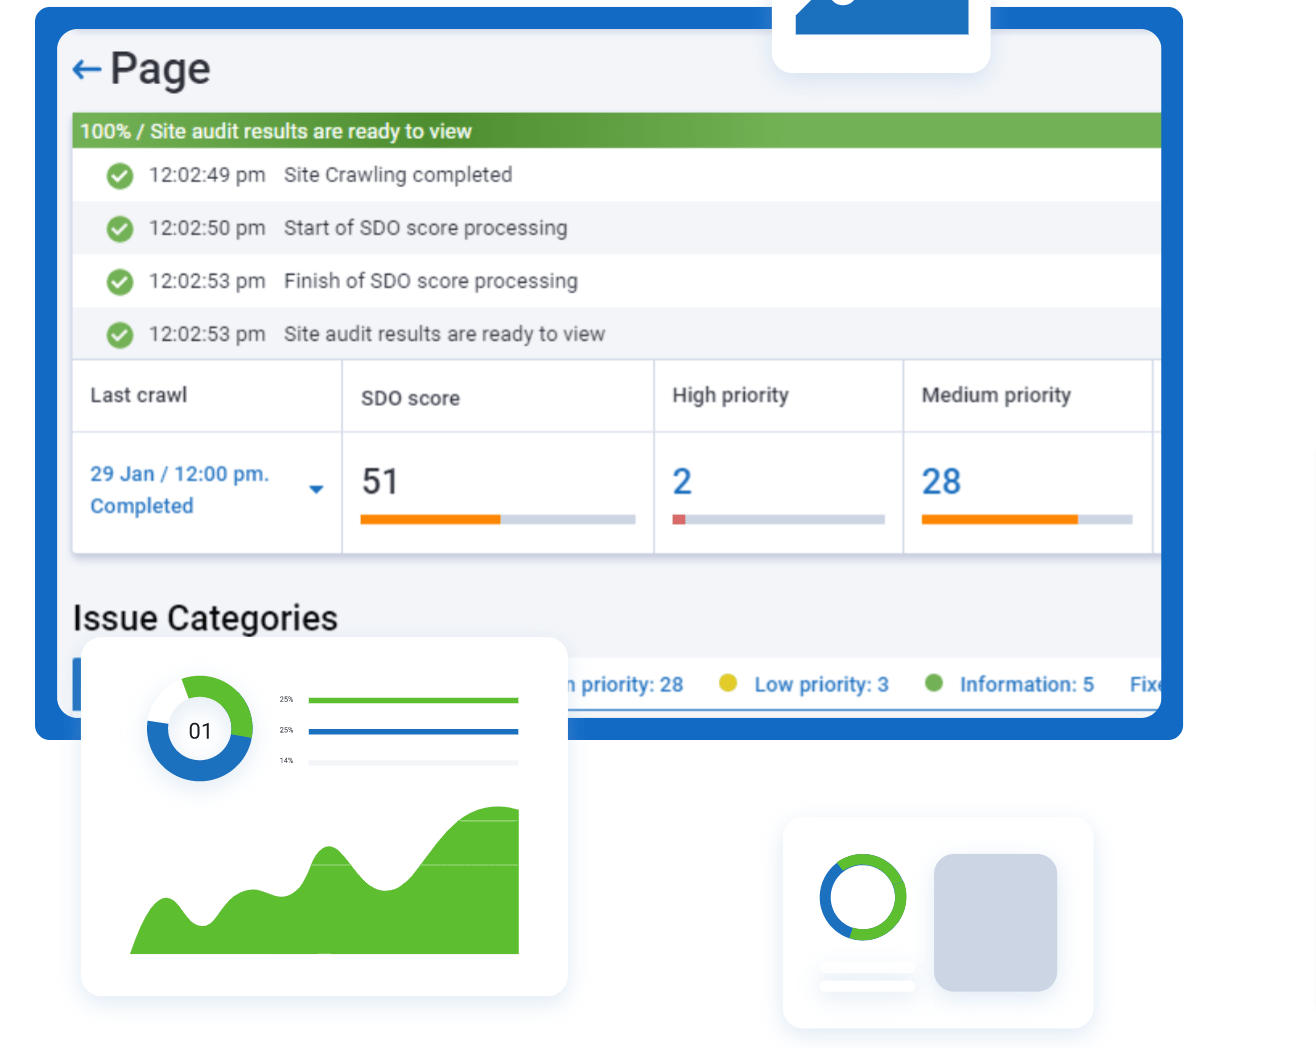 Technical website SEO audit online SEO checkup from Serpstat features